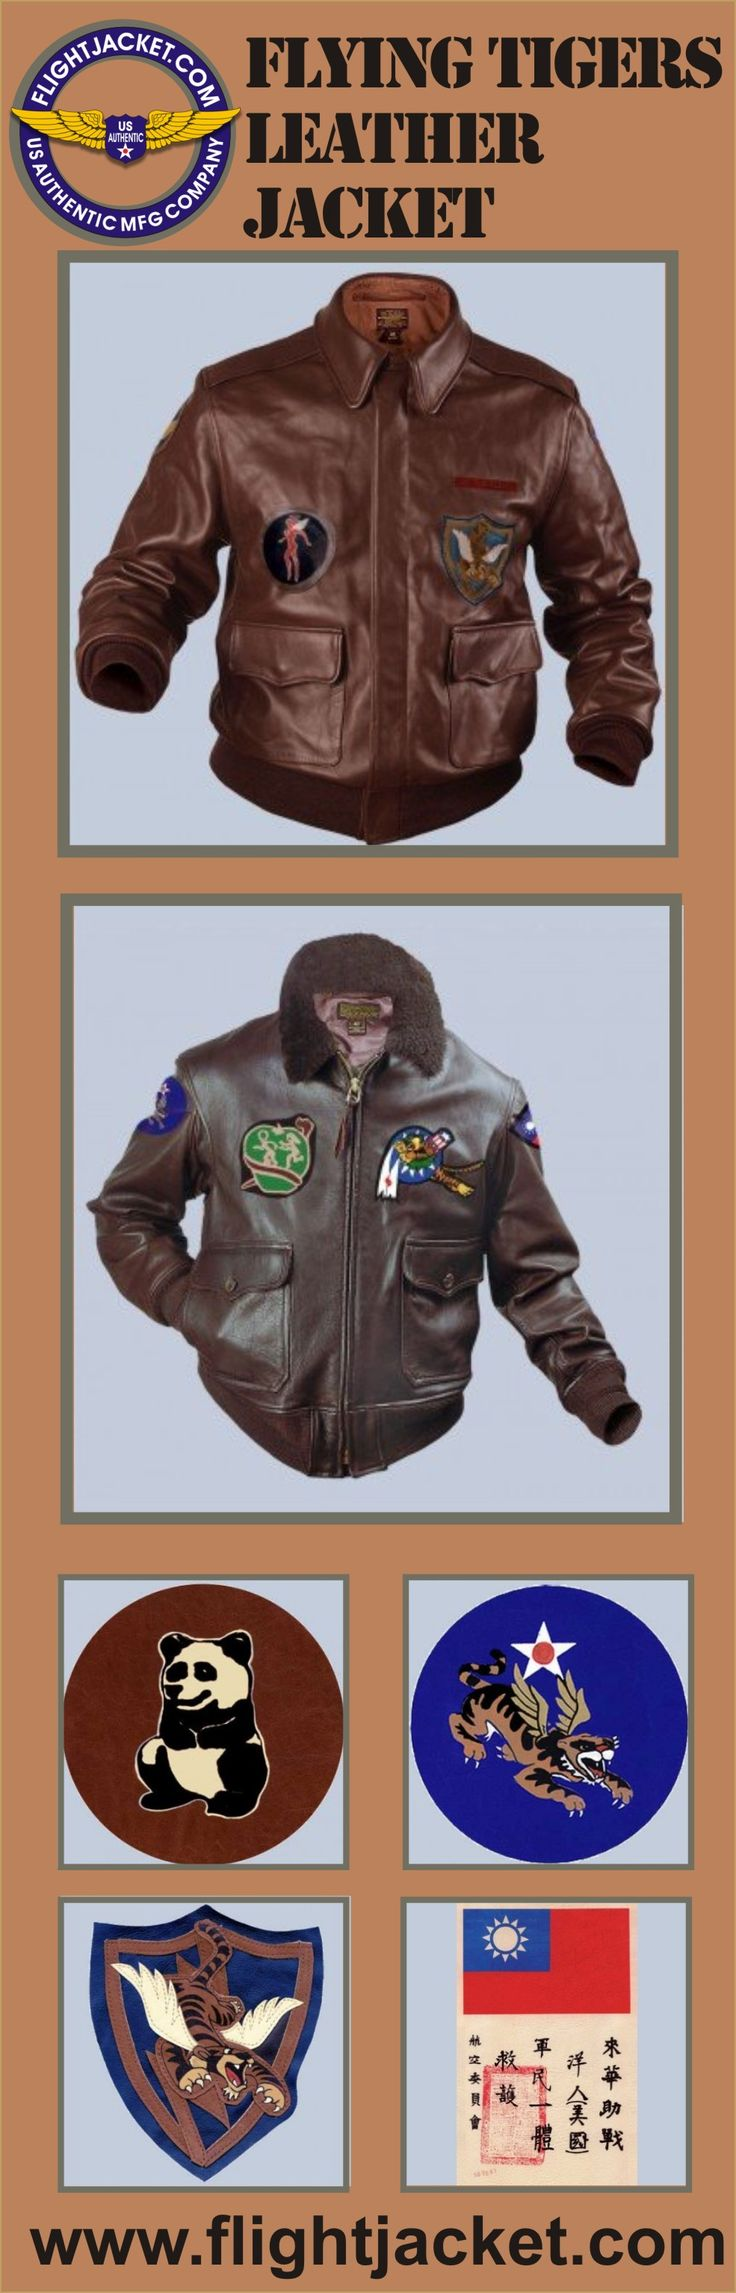 Flying Tigers A2 Leather Jacket. Comes as an A-2 or G-1 Jacket. Explore the collection of our military spec. flight jackets at a discounted price. Made IN THE USA www.flightJacket.com